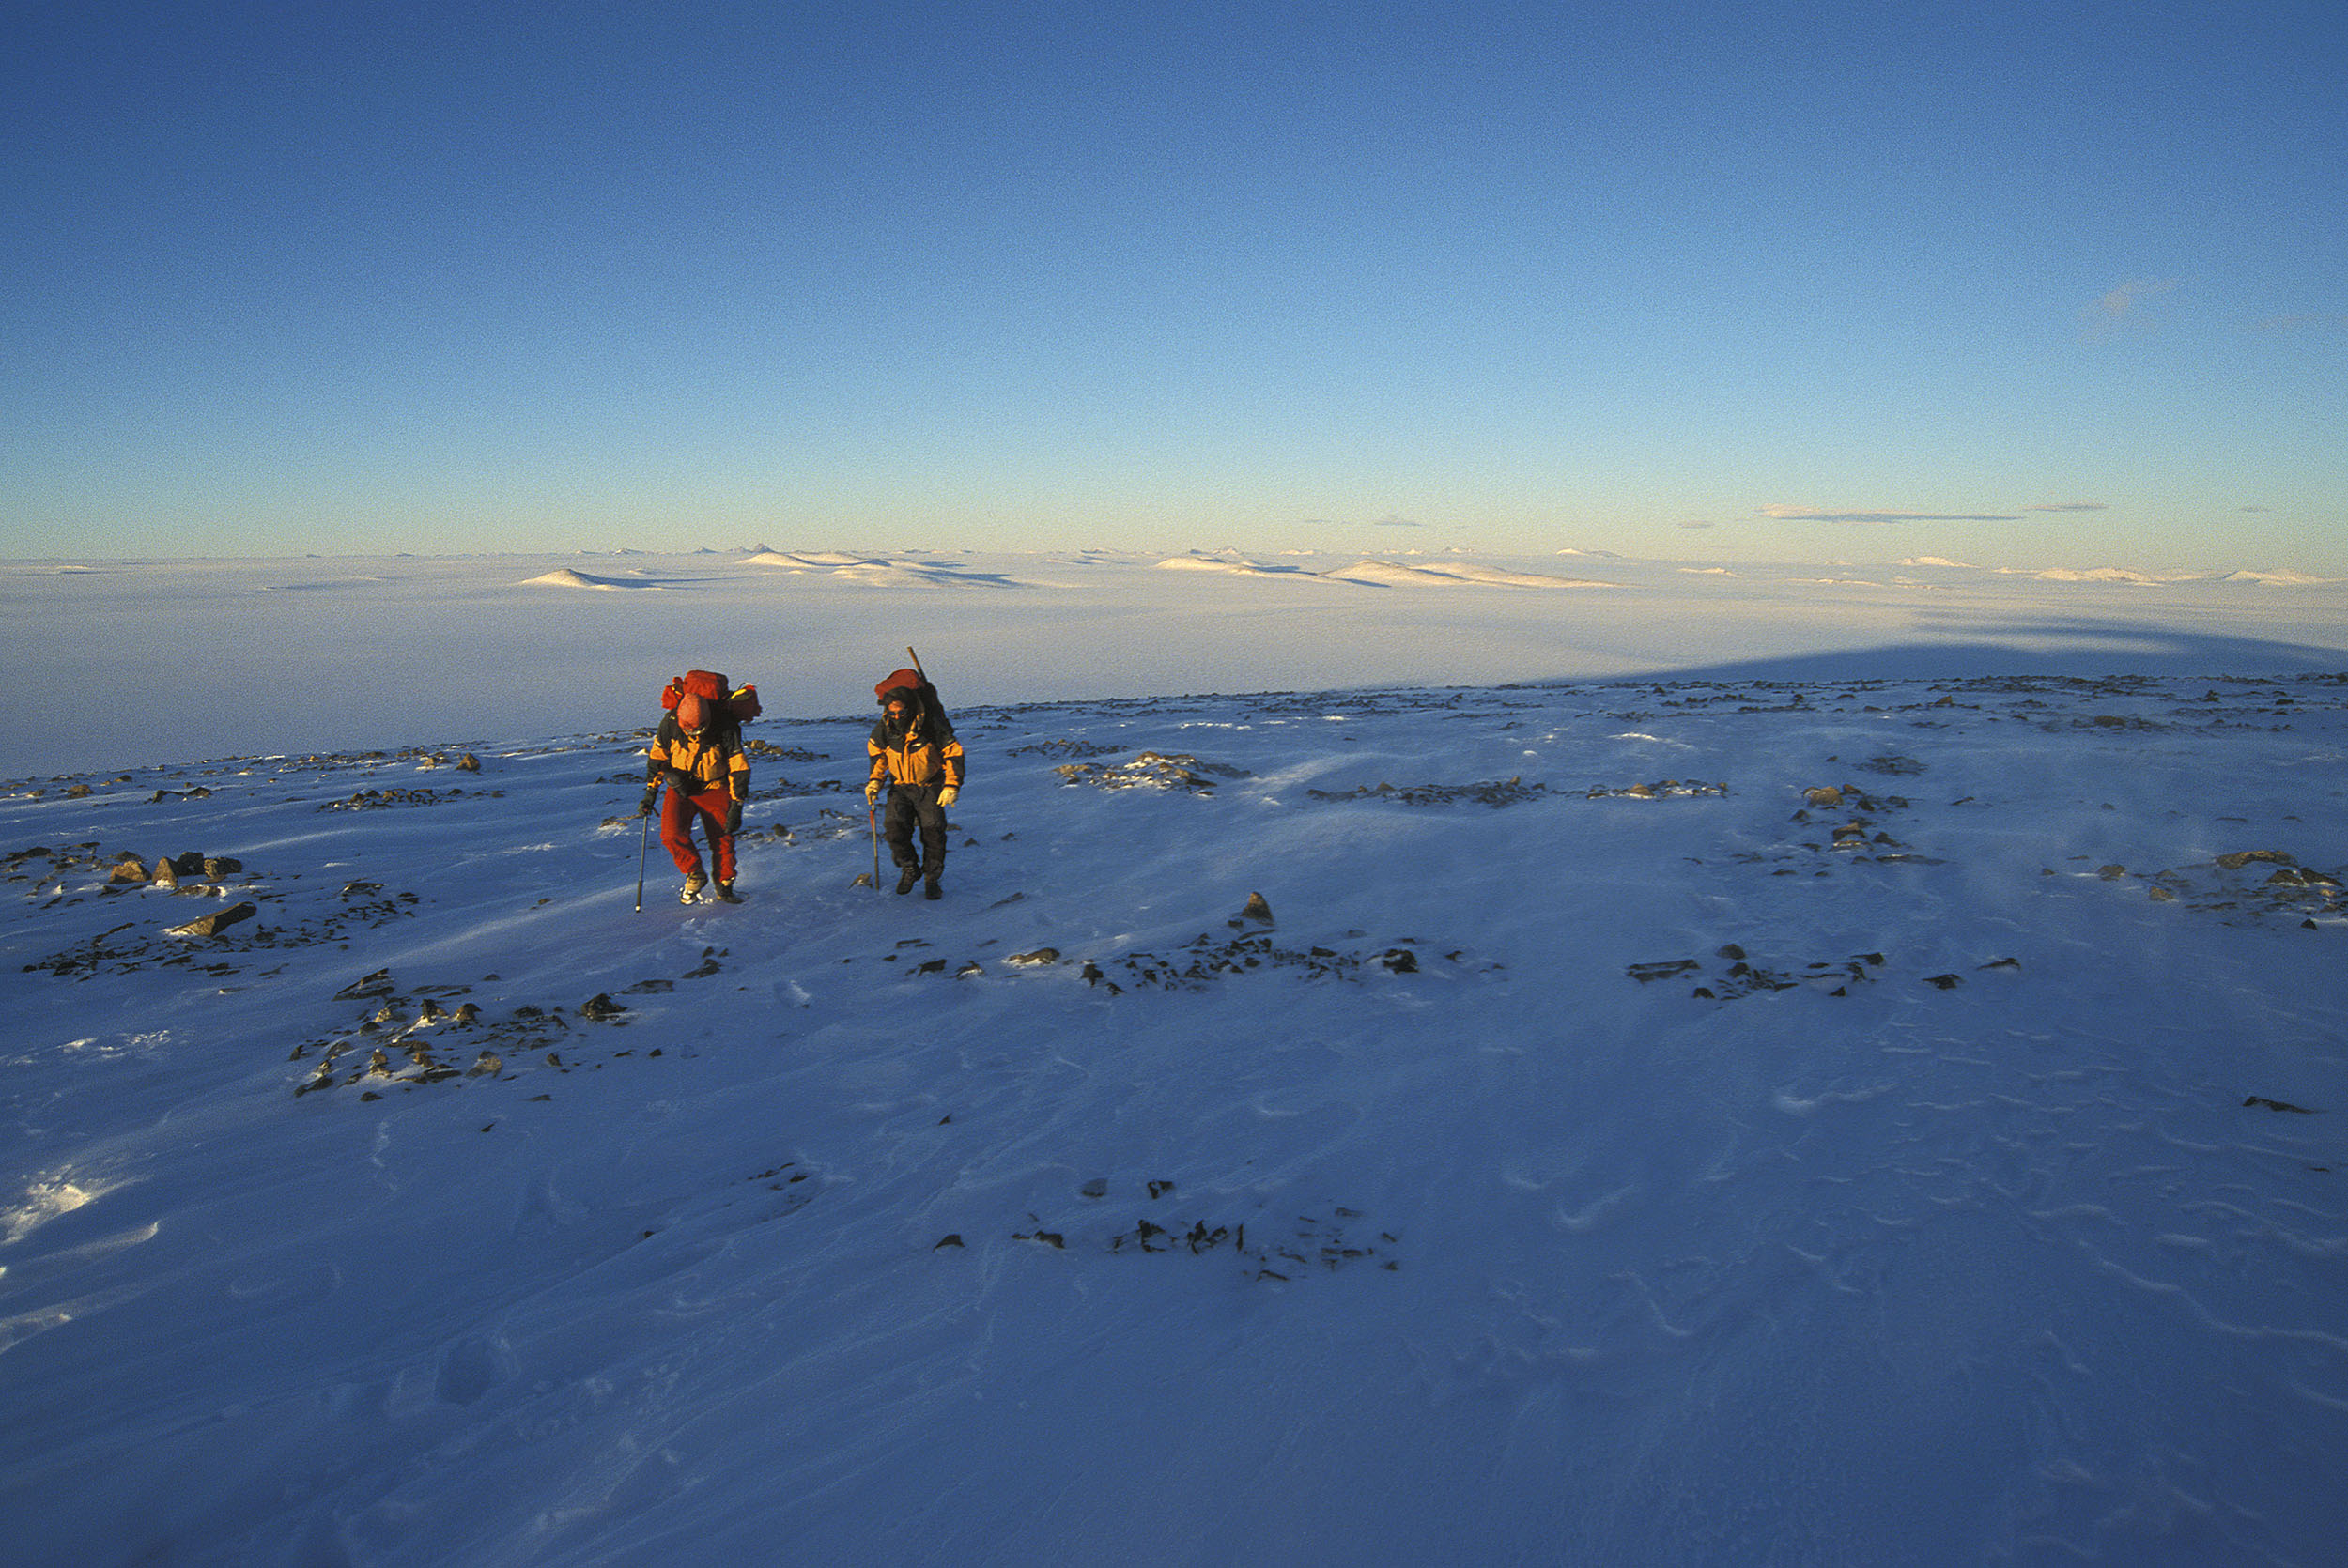 Climbing on Fisher Massif, Northern Prince Charles Mountains, Antarctica. © www.thomaspickard.com